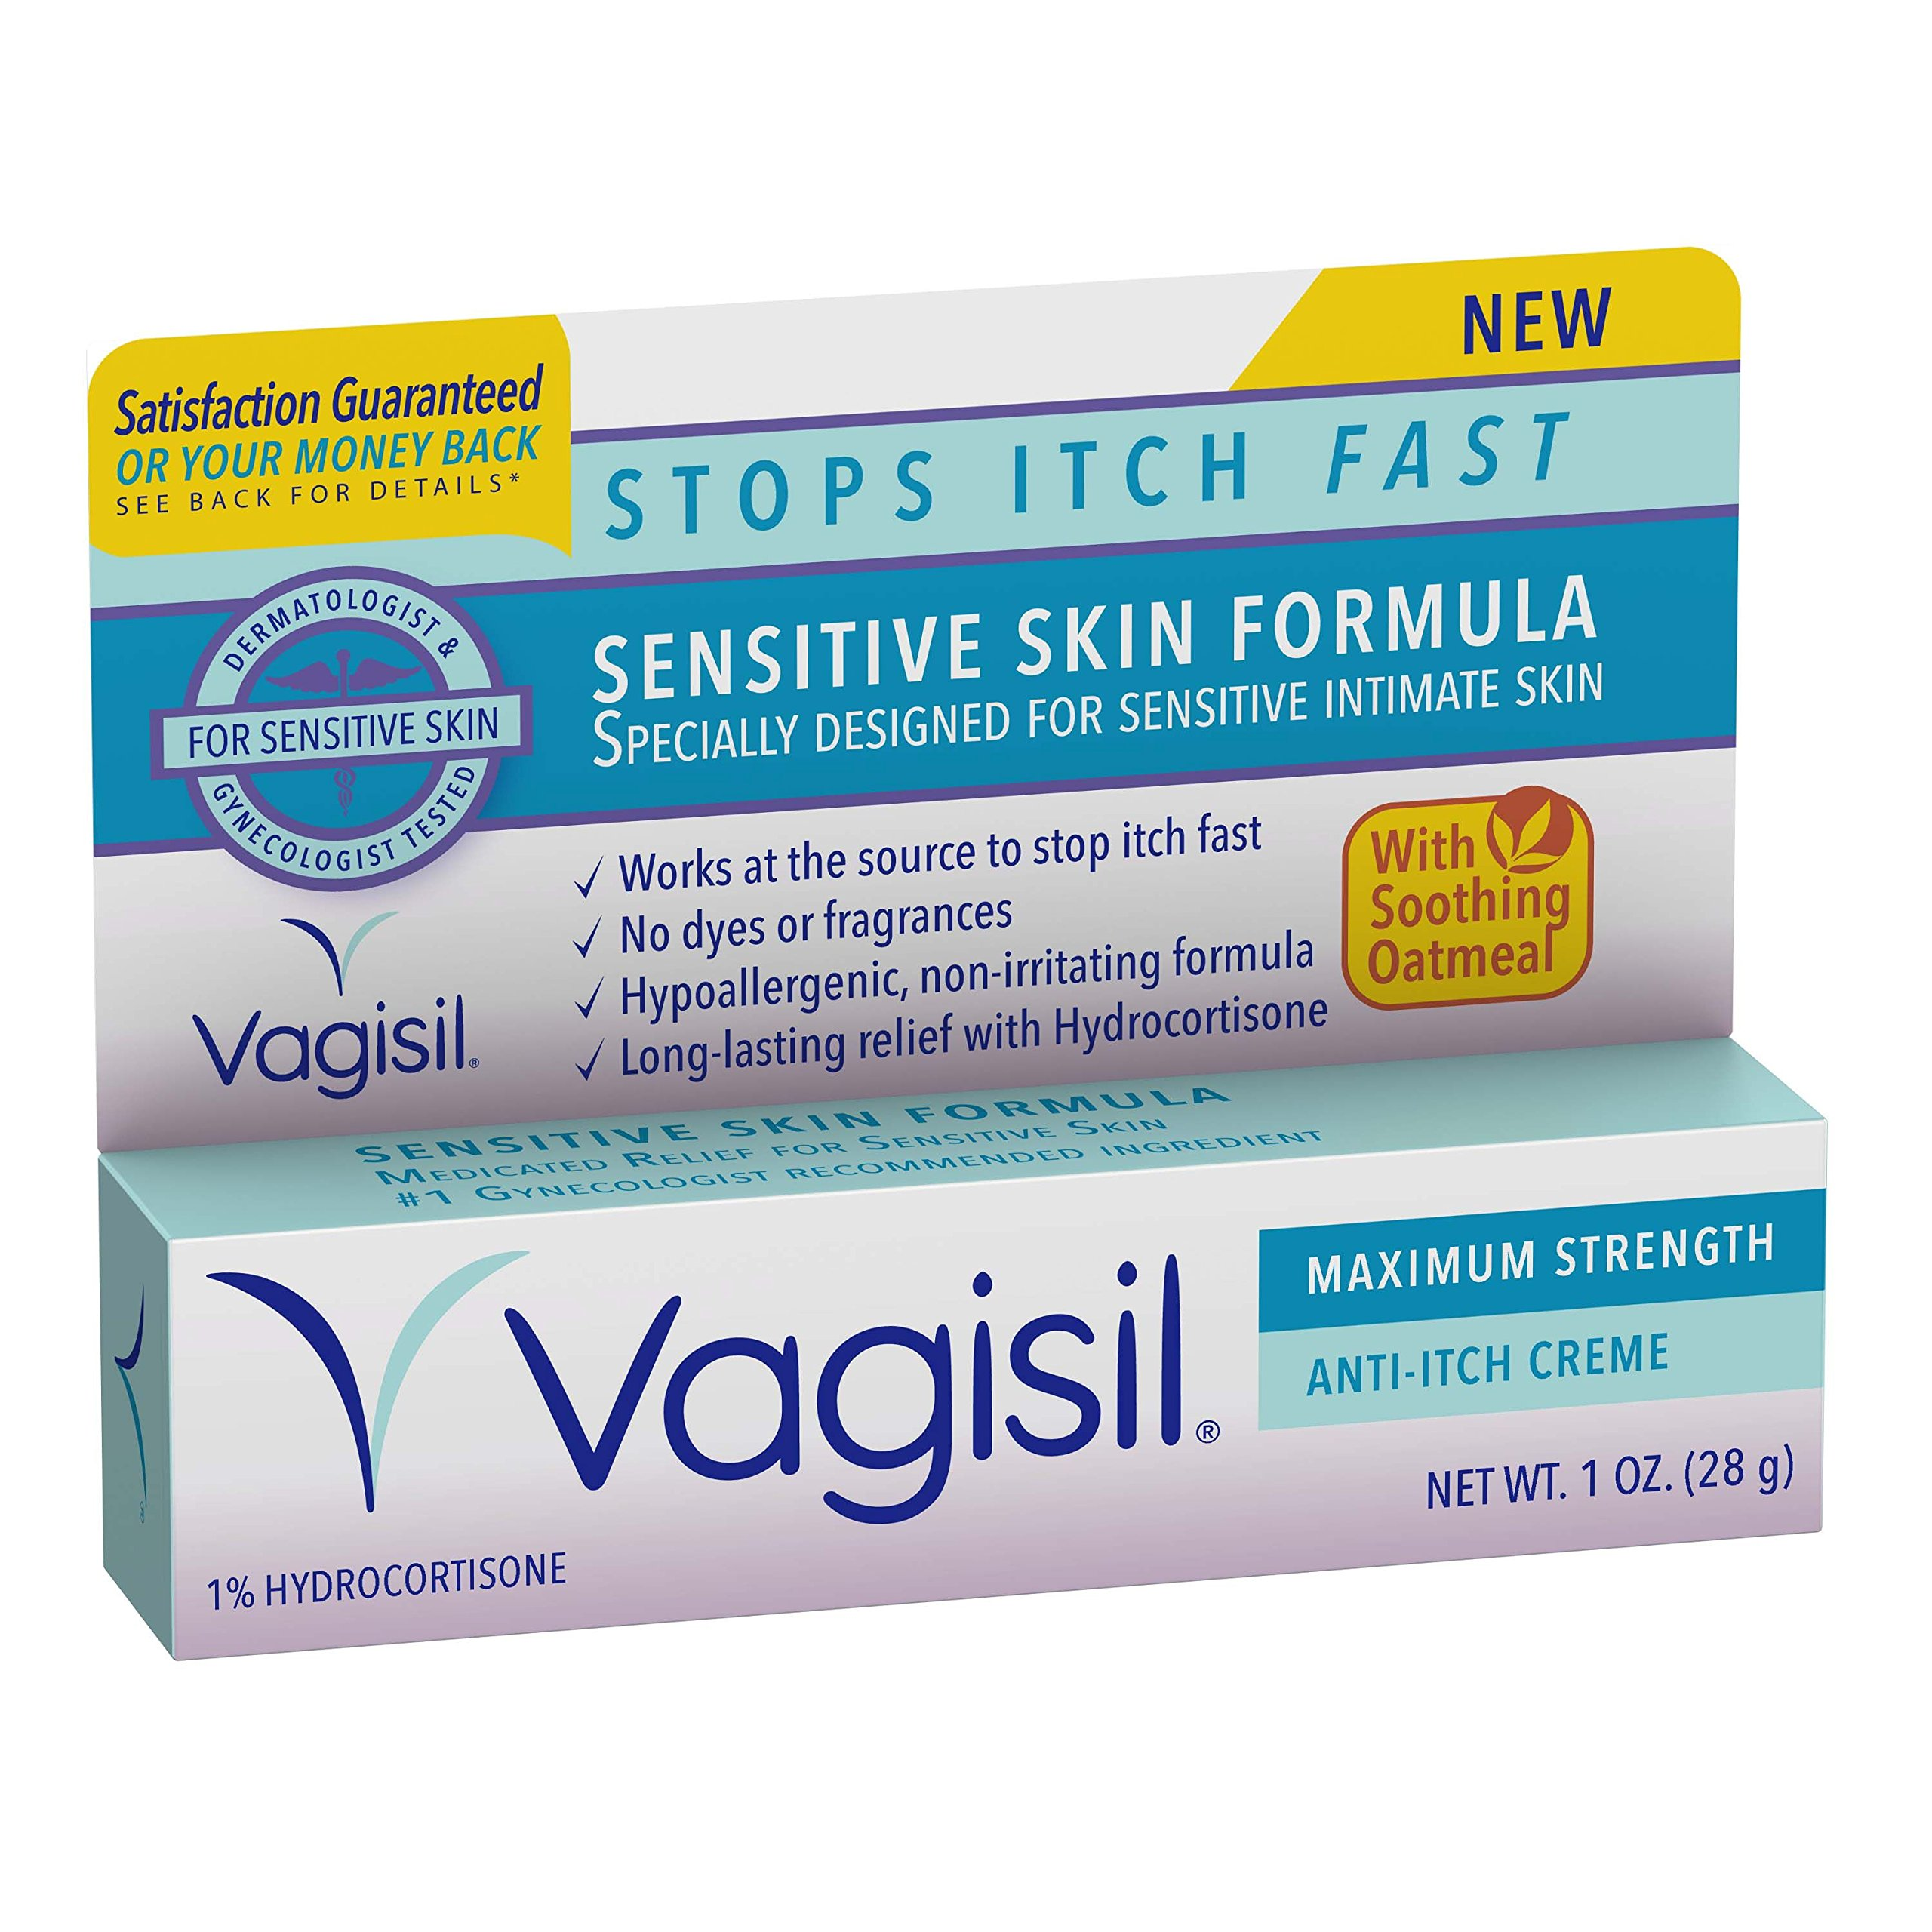 Vagisil Maximum Strength Anti-Itch Vaginal Crème for Sensitive Skin with  Hydrocortisone Acetate, 1 oz